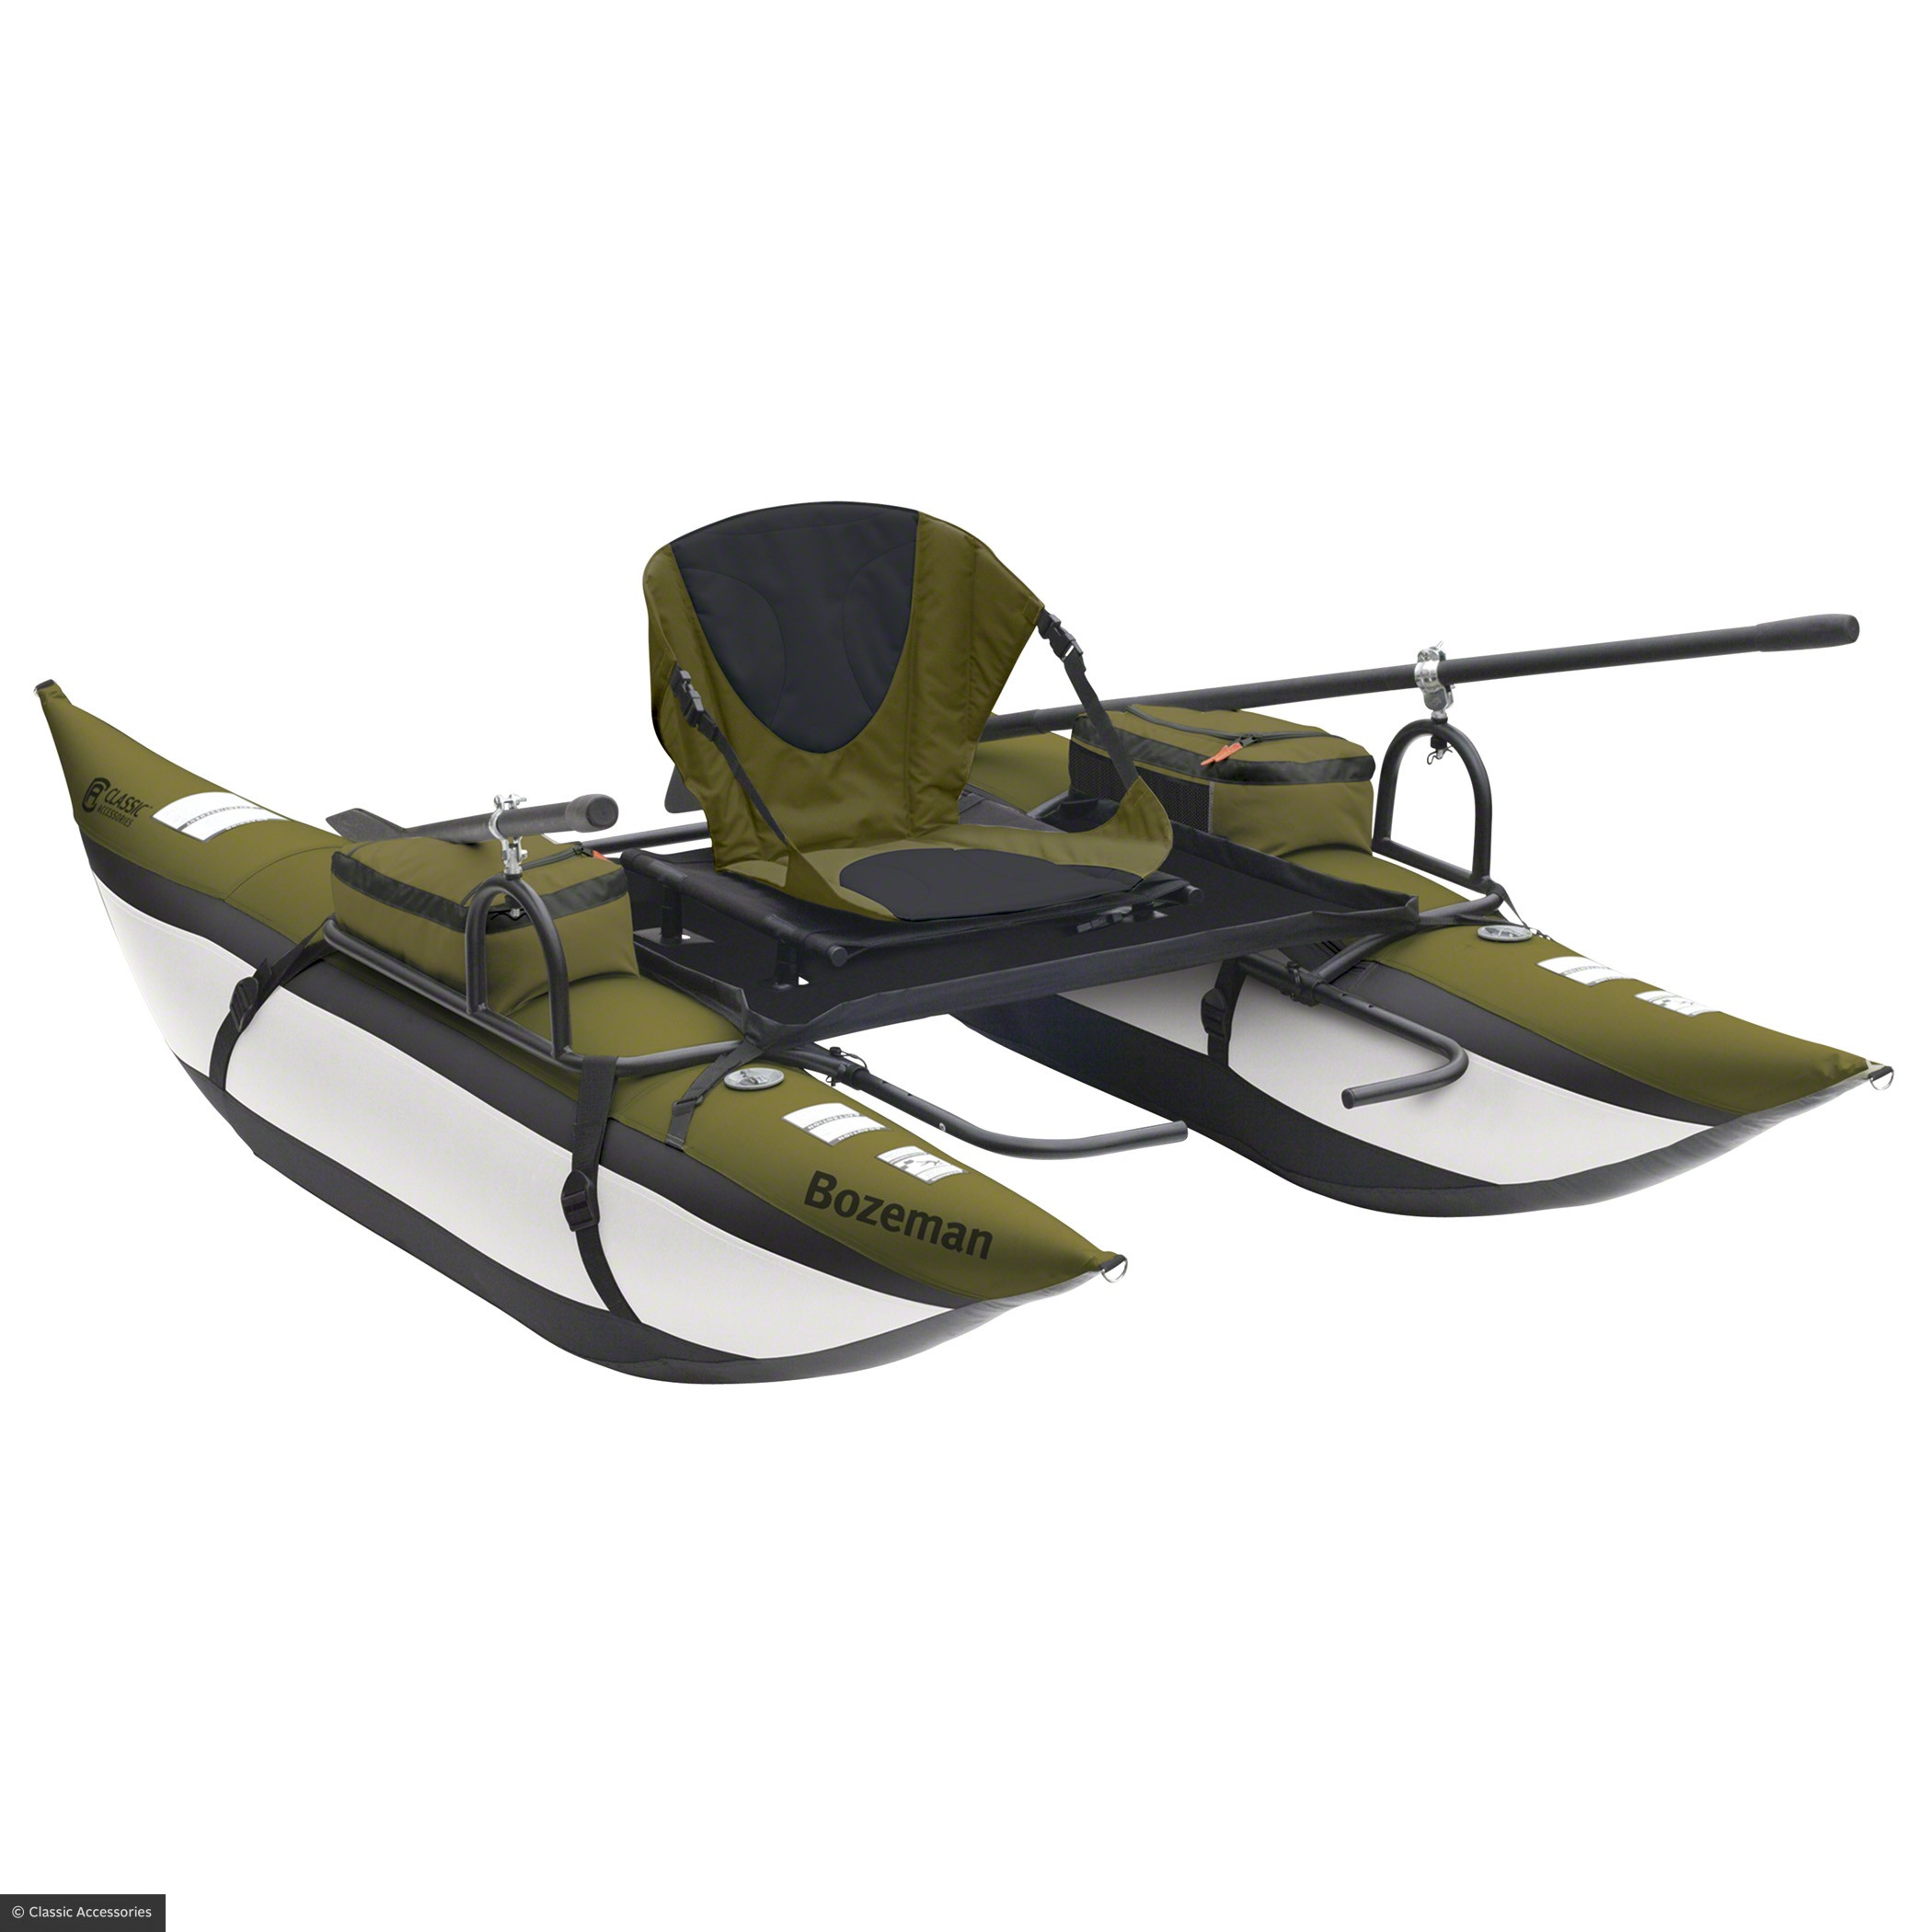 Classic Accessories Classic Bozeman Pontoon Boat Sage